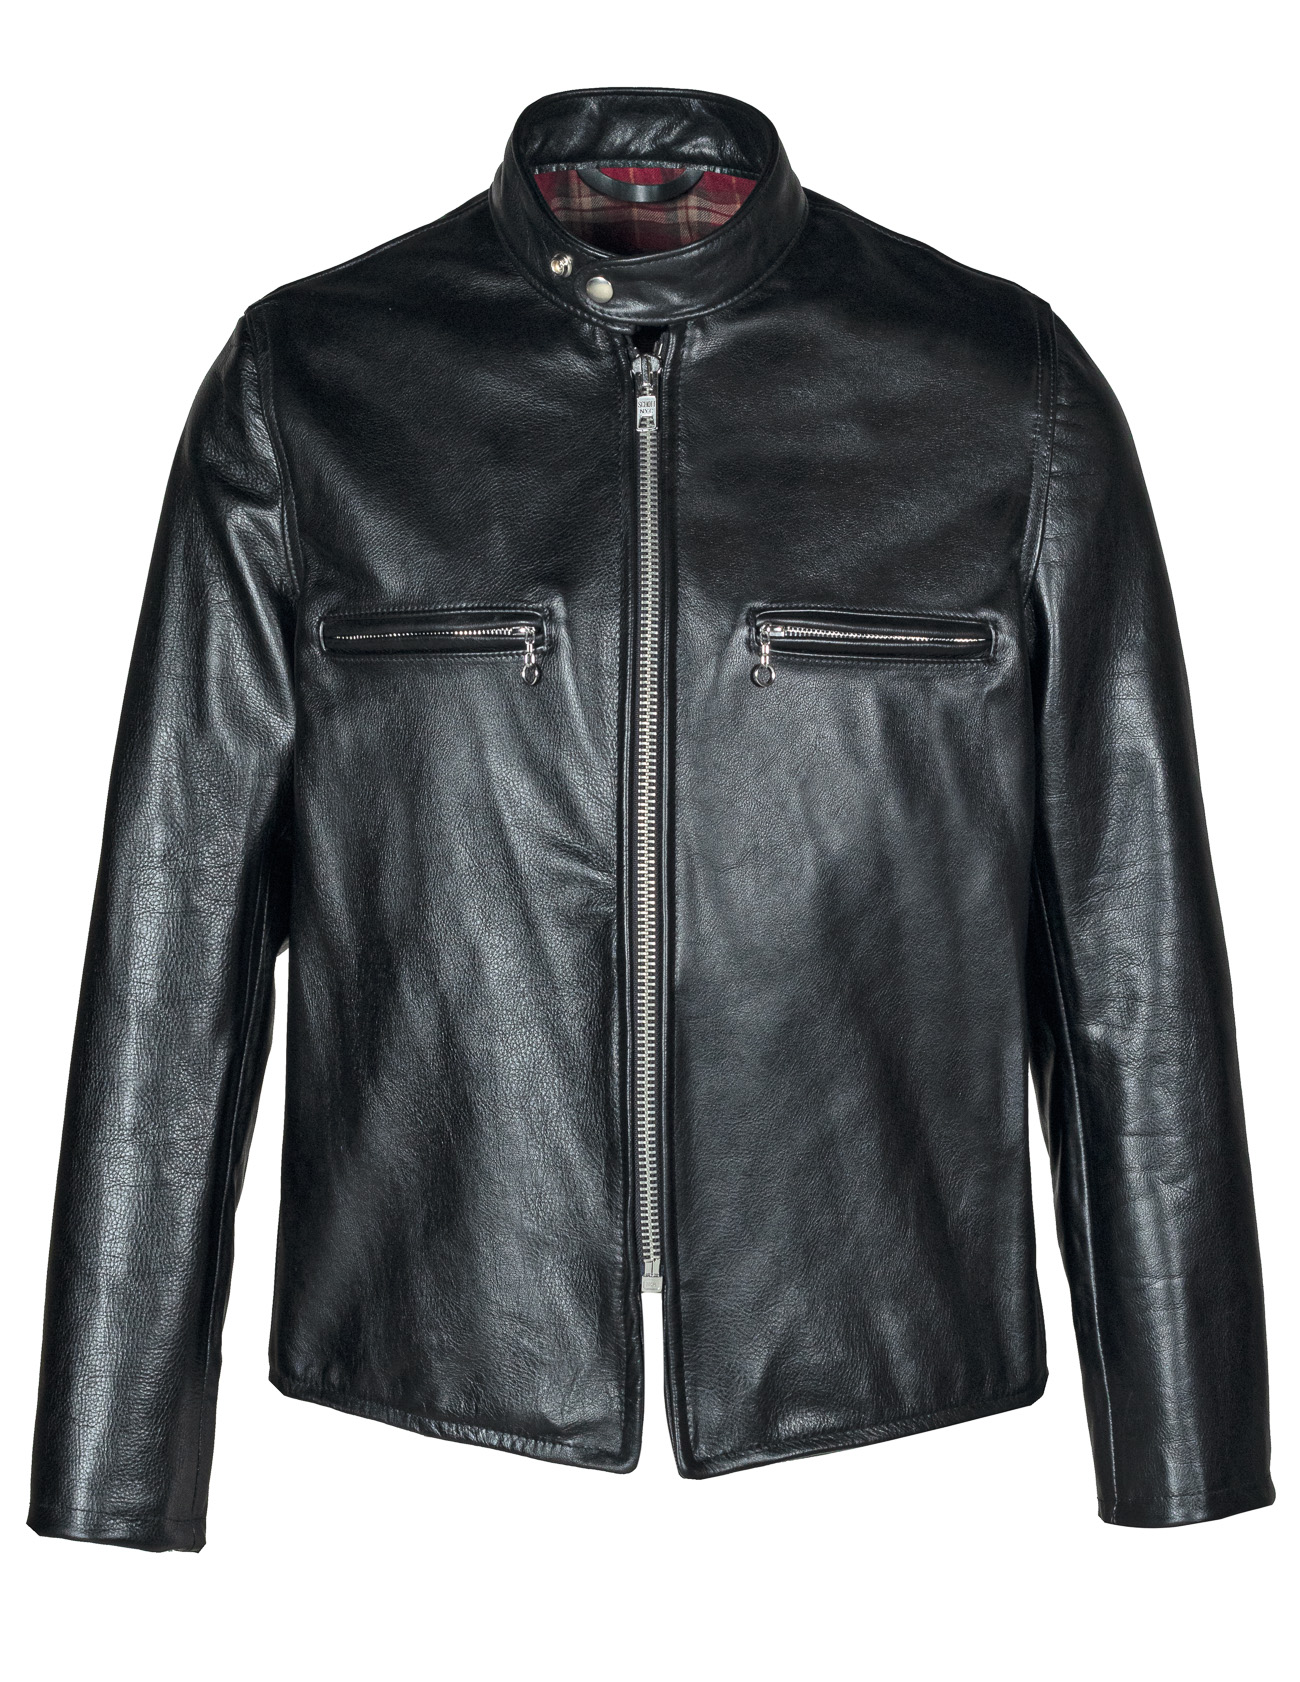 Schott N.Y.C. CAF1 Men's Black Leather Cafe Racer Motorcycle Jacket